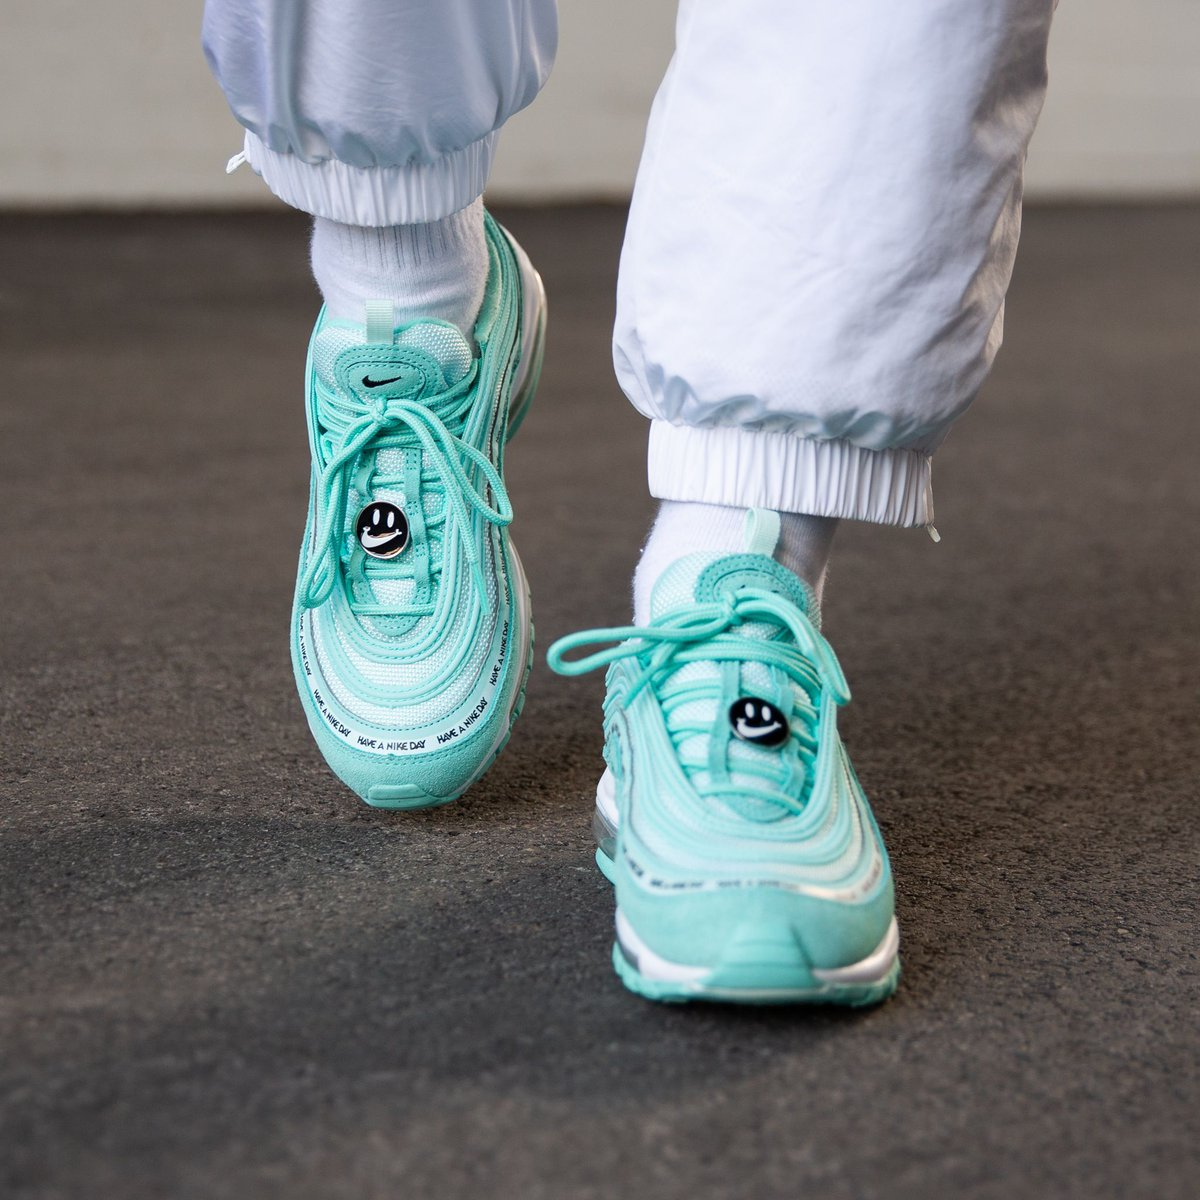 cb1976f41 ONLINE NOW! Nike Air Max 97 Se (Gs) - Tropical Twist Black-Teal Tint-White  SHOP HERE  http   bit.ly 2tvnORG pic.twitter.com meX5YPXt8r